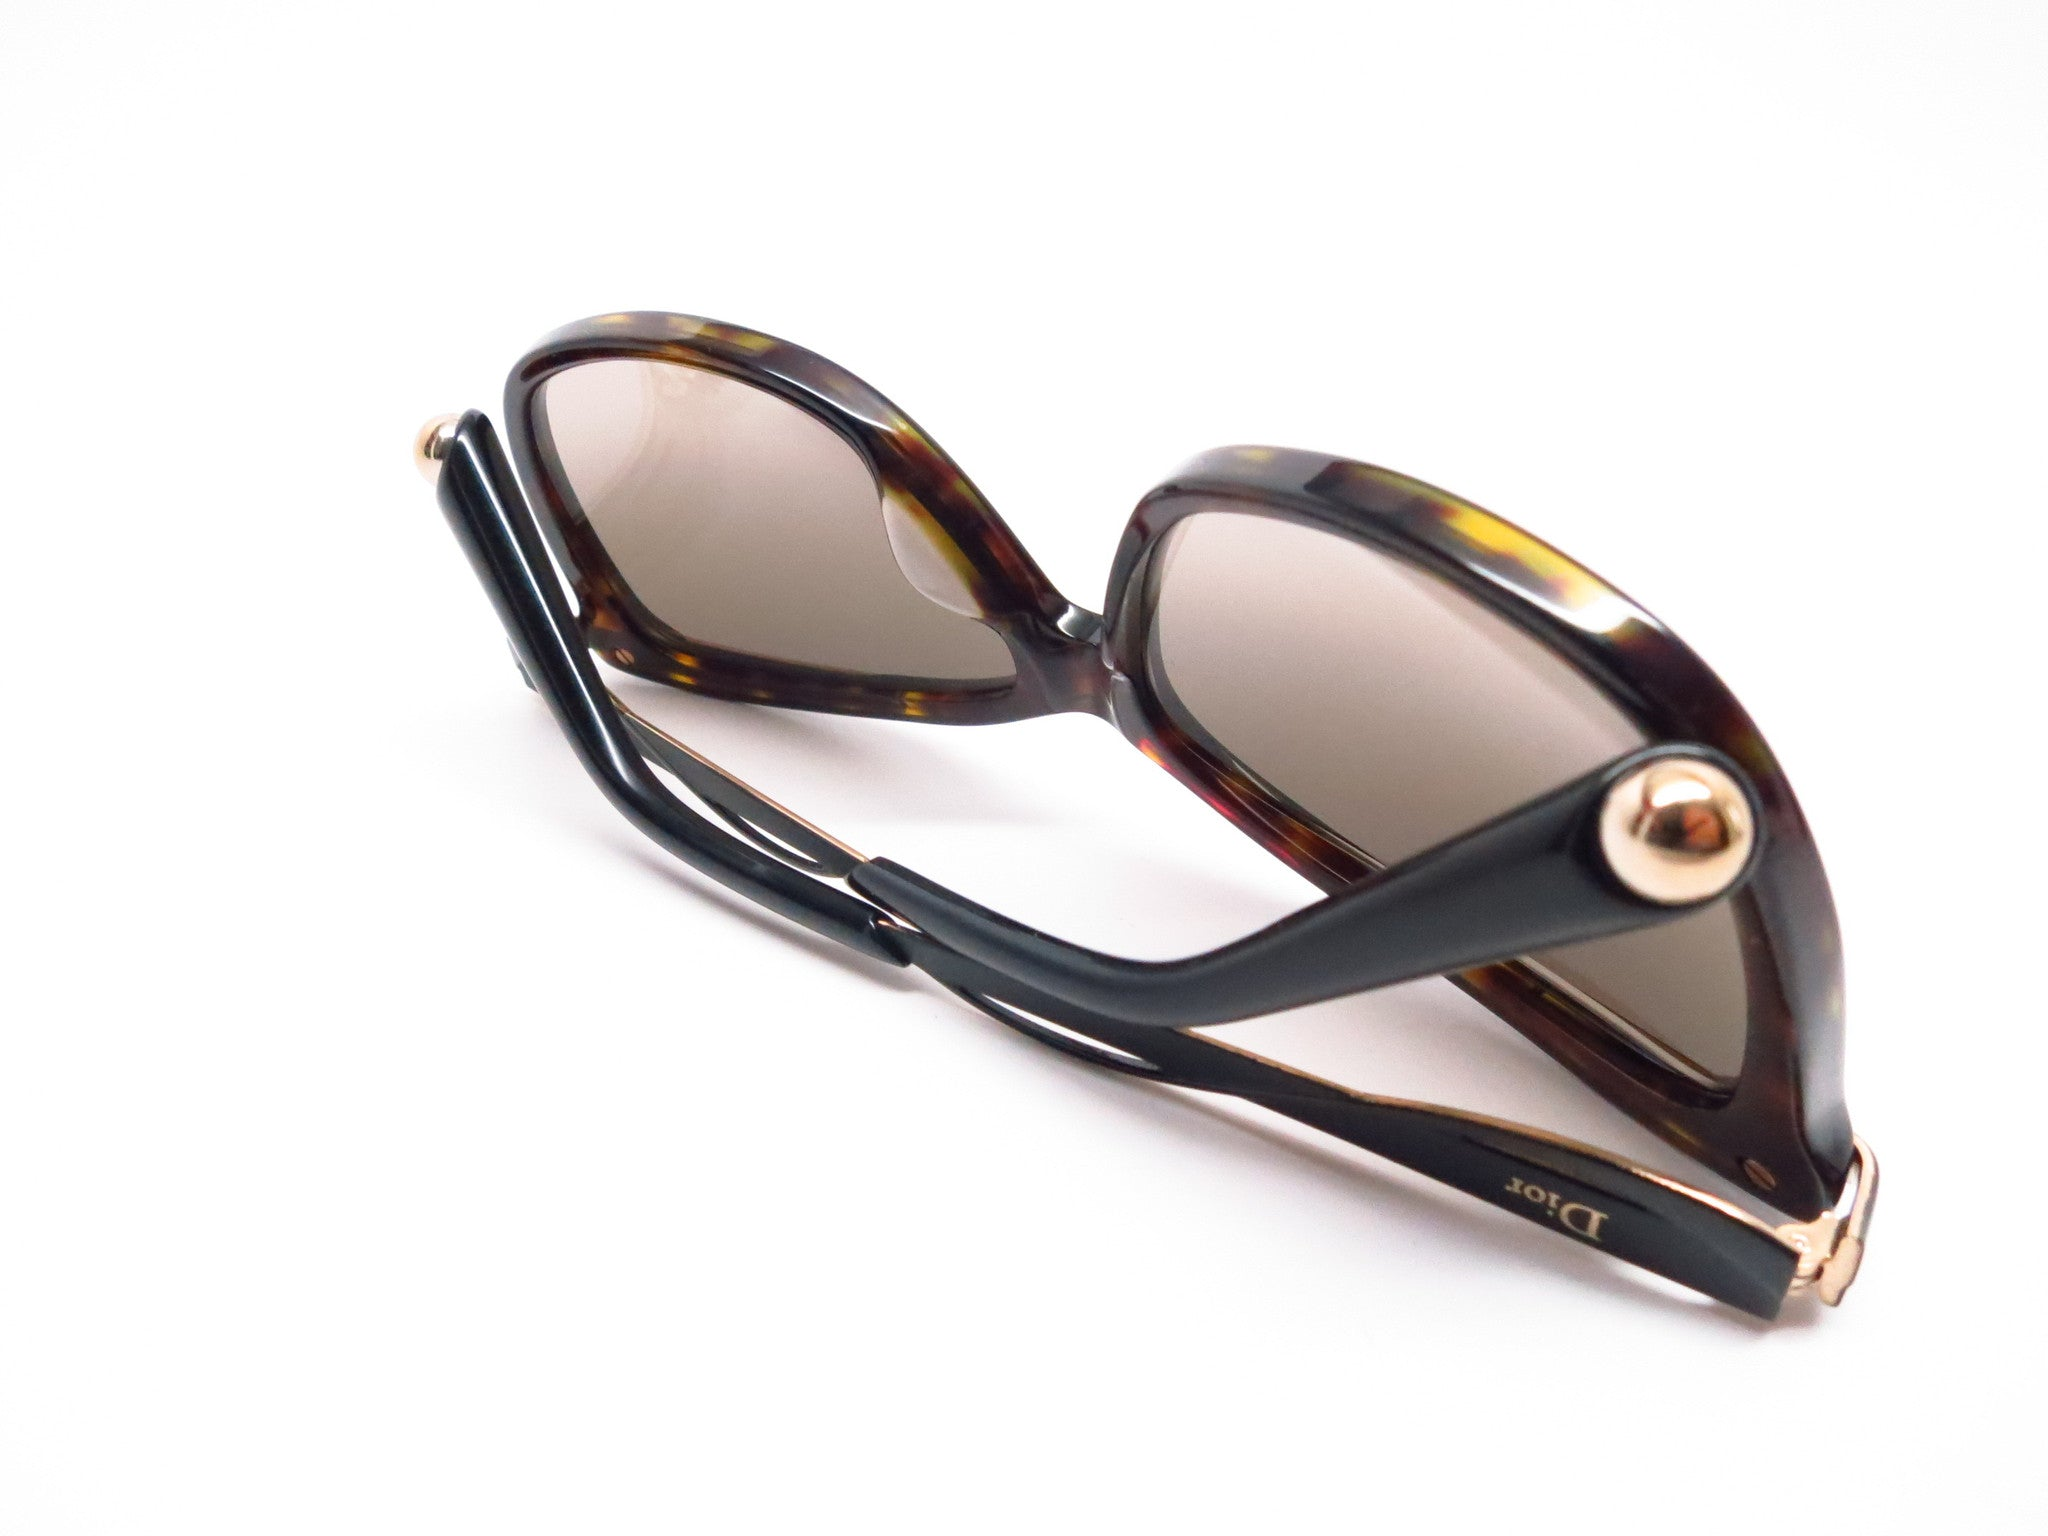 08979de442 ... Dior Metaleyes 2 6NYHA Dark Havana Sunglasses - Eye Heart Shades - Dior  - Sunglasses -